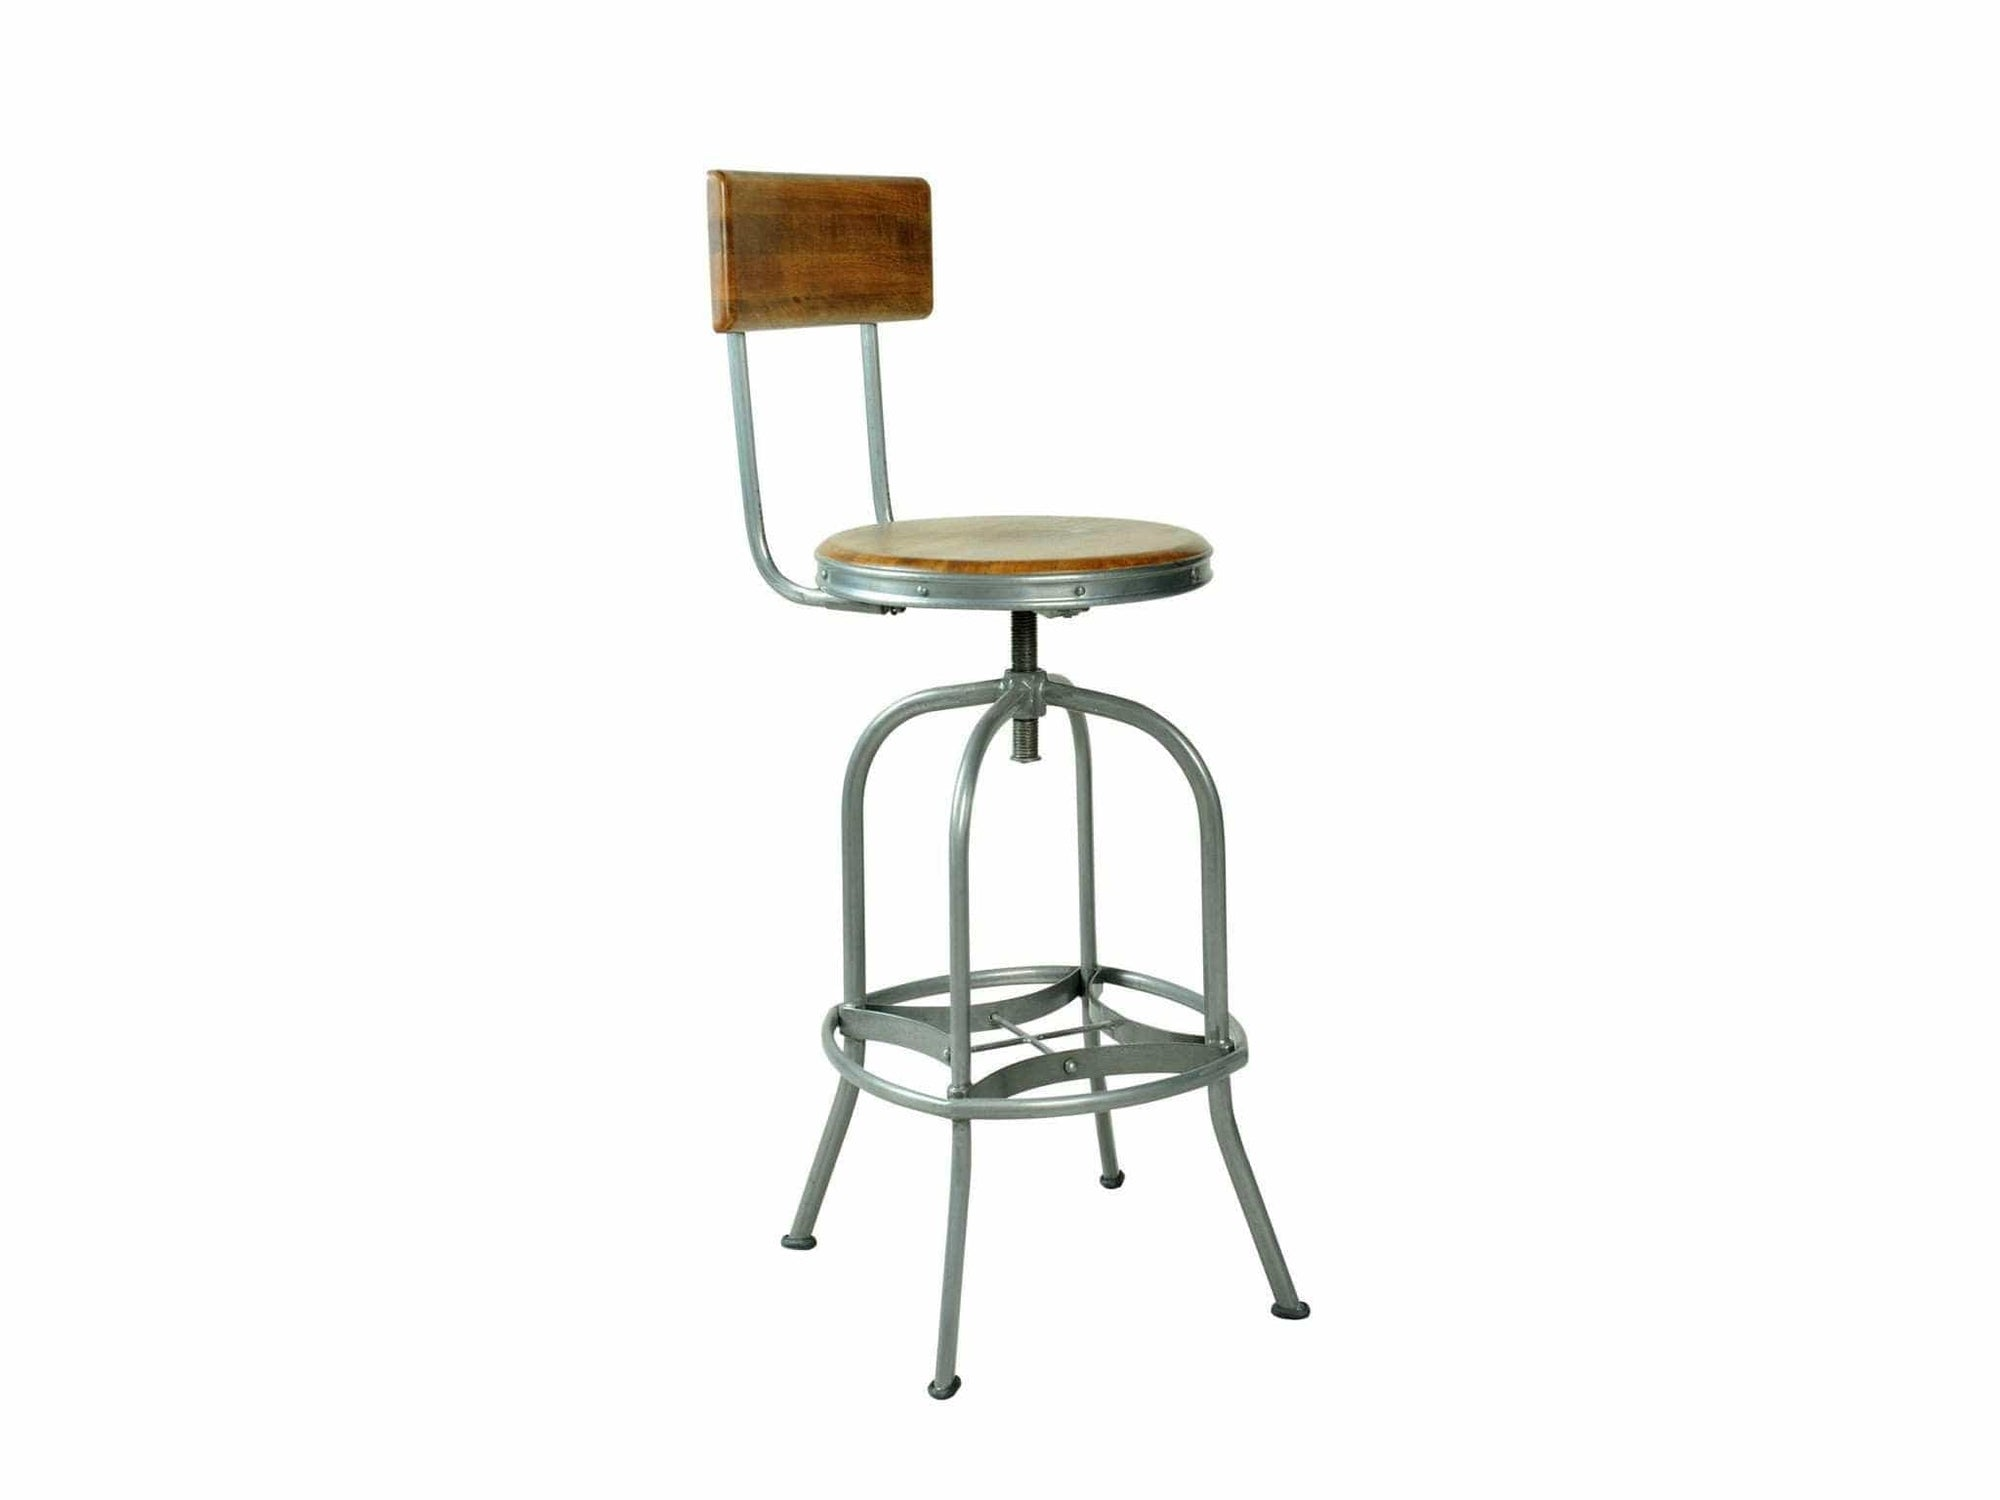 Industrial style bar stool with adjustable seat height and steel base